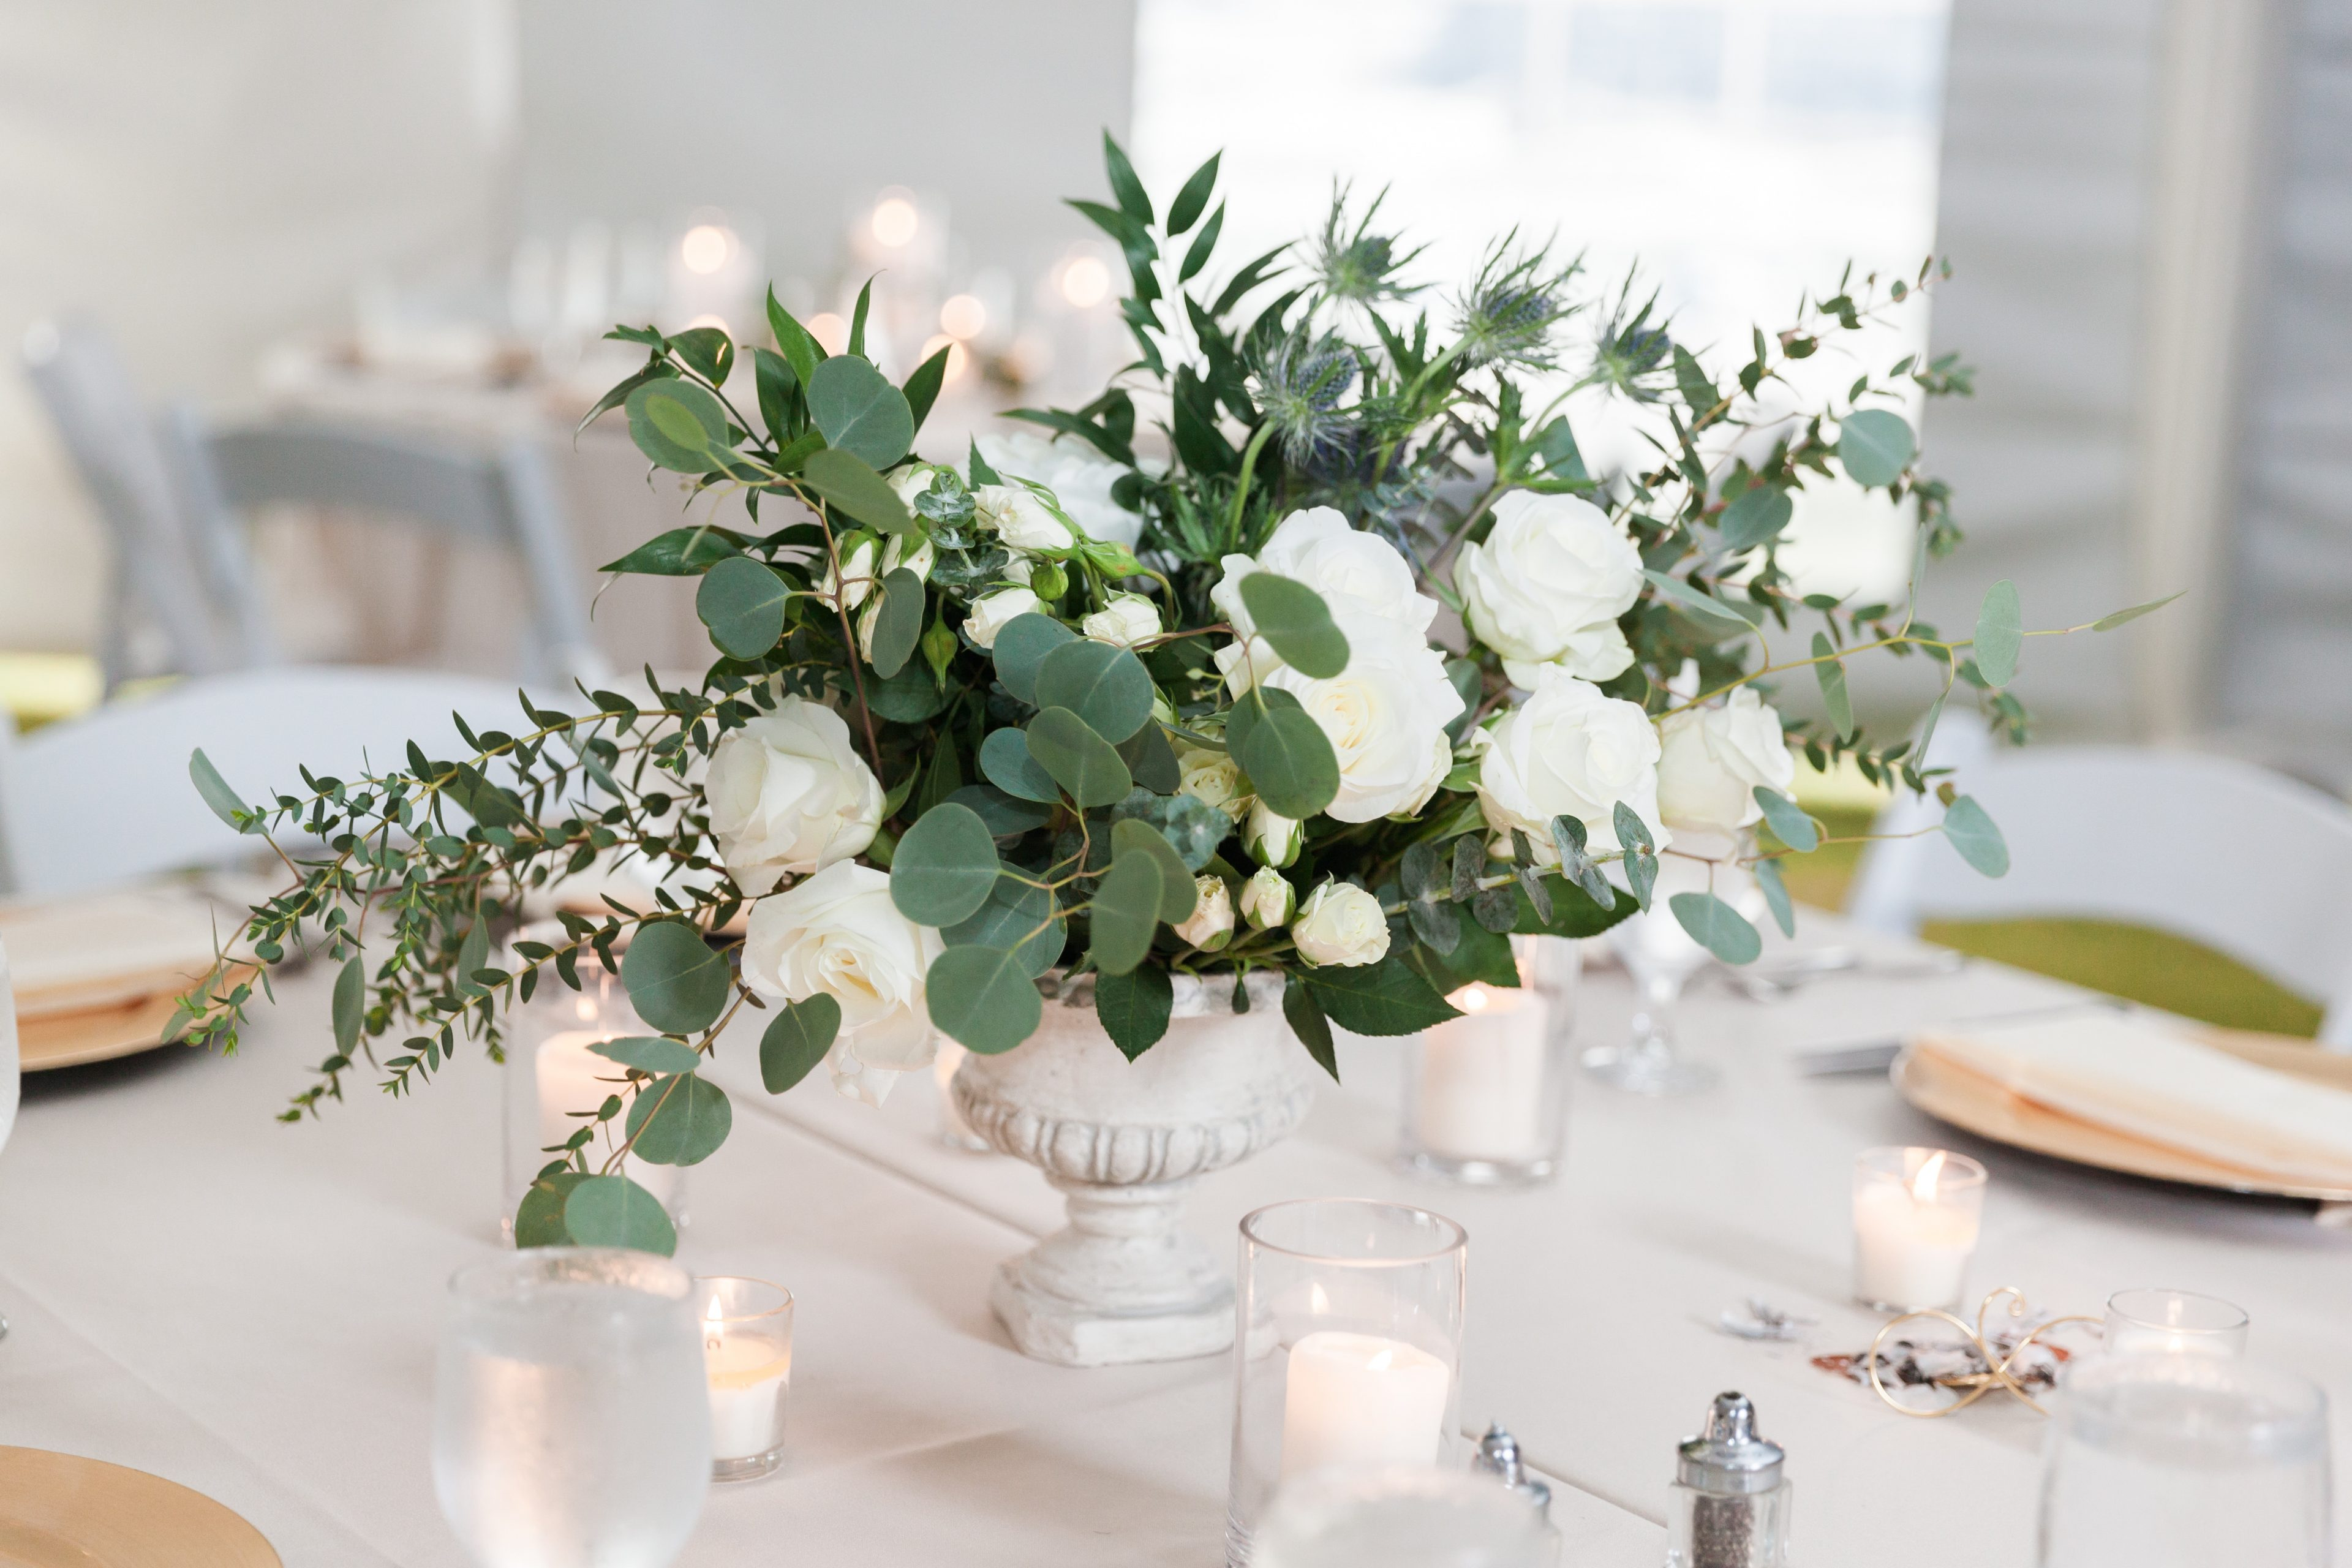 White column vase wedding centerpiece filled with greenery and white roses